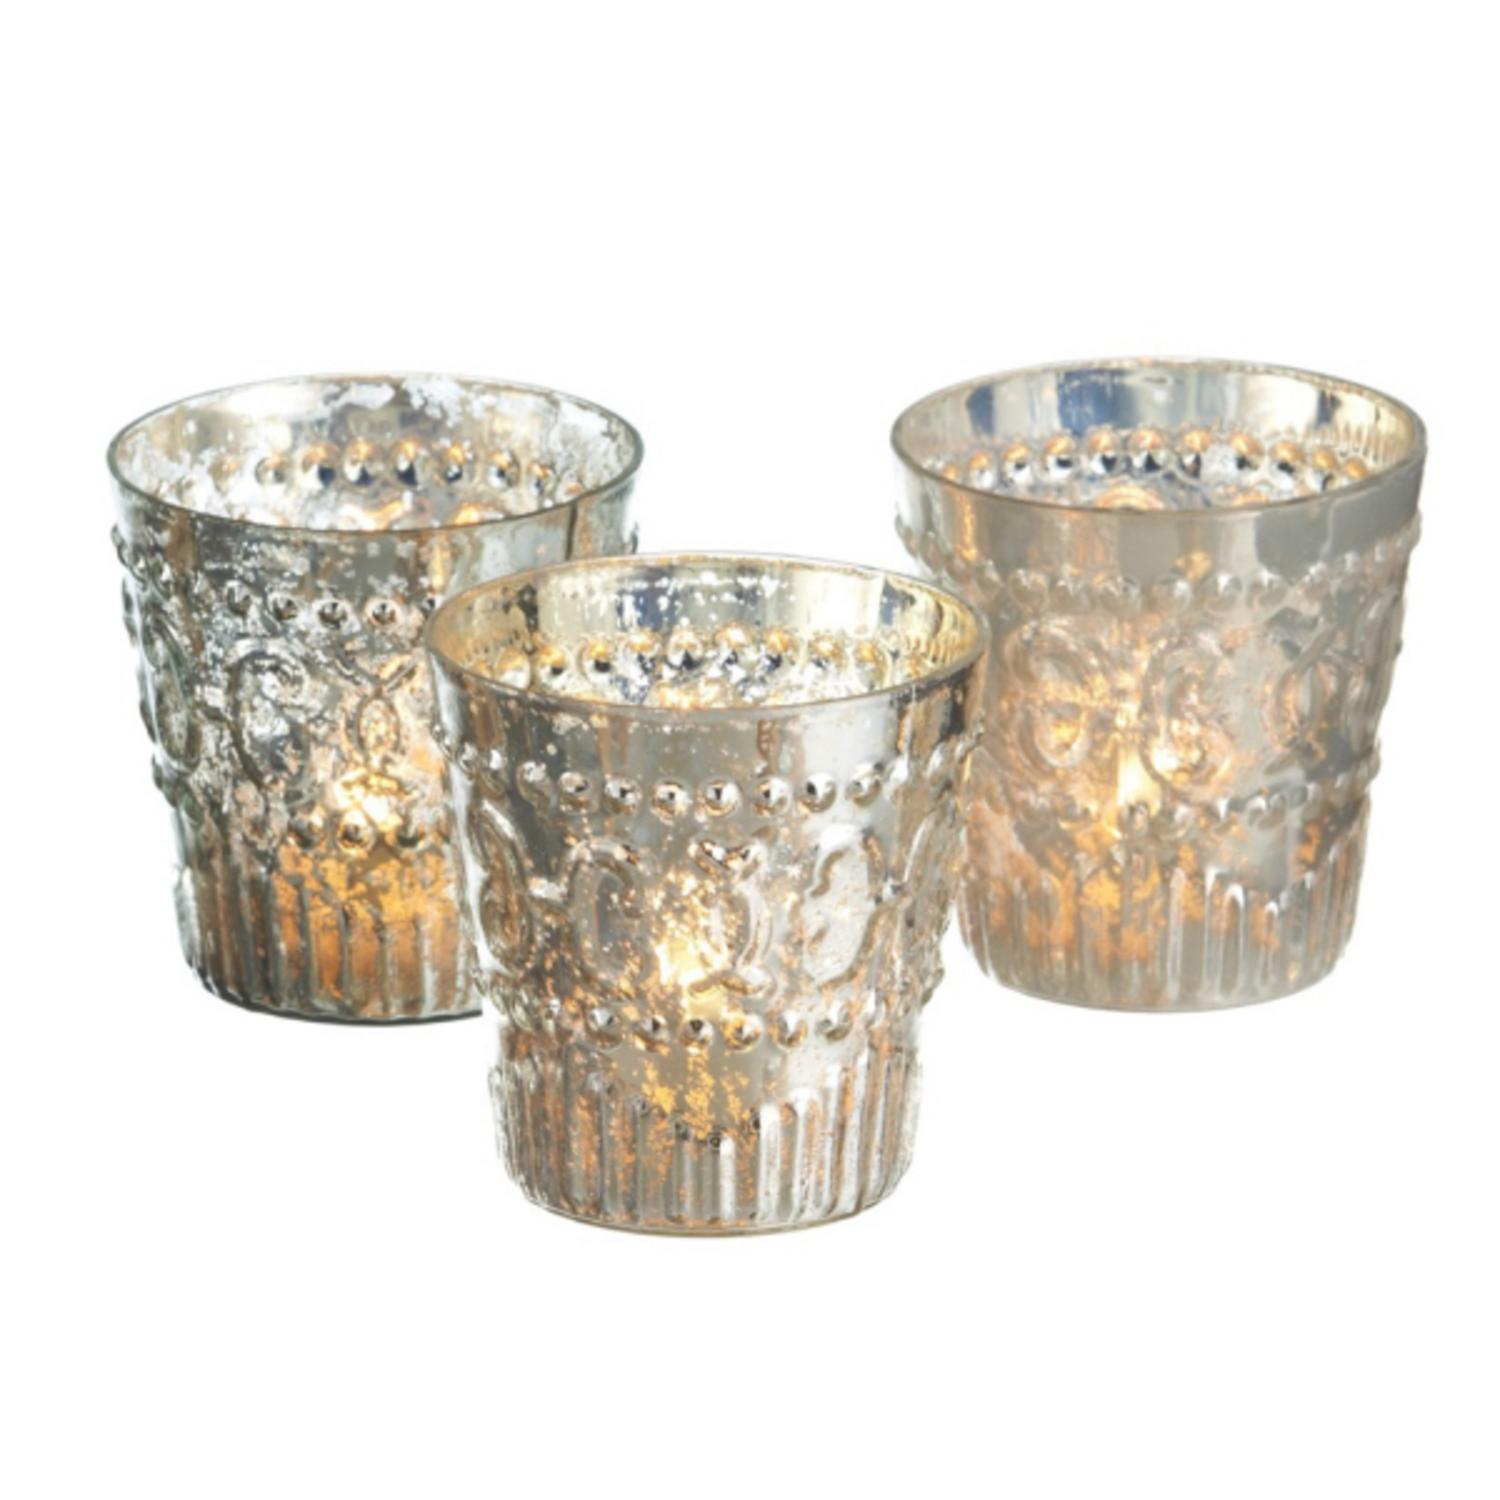 Pack of 6 Embossed Mercury Glass Decorative Tea Light Candle Holders 4""